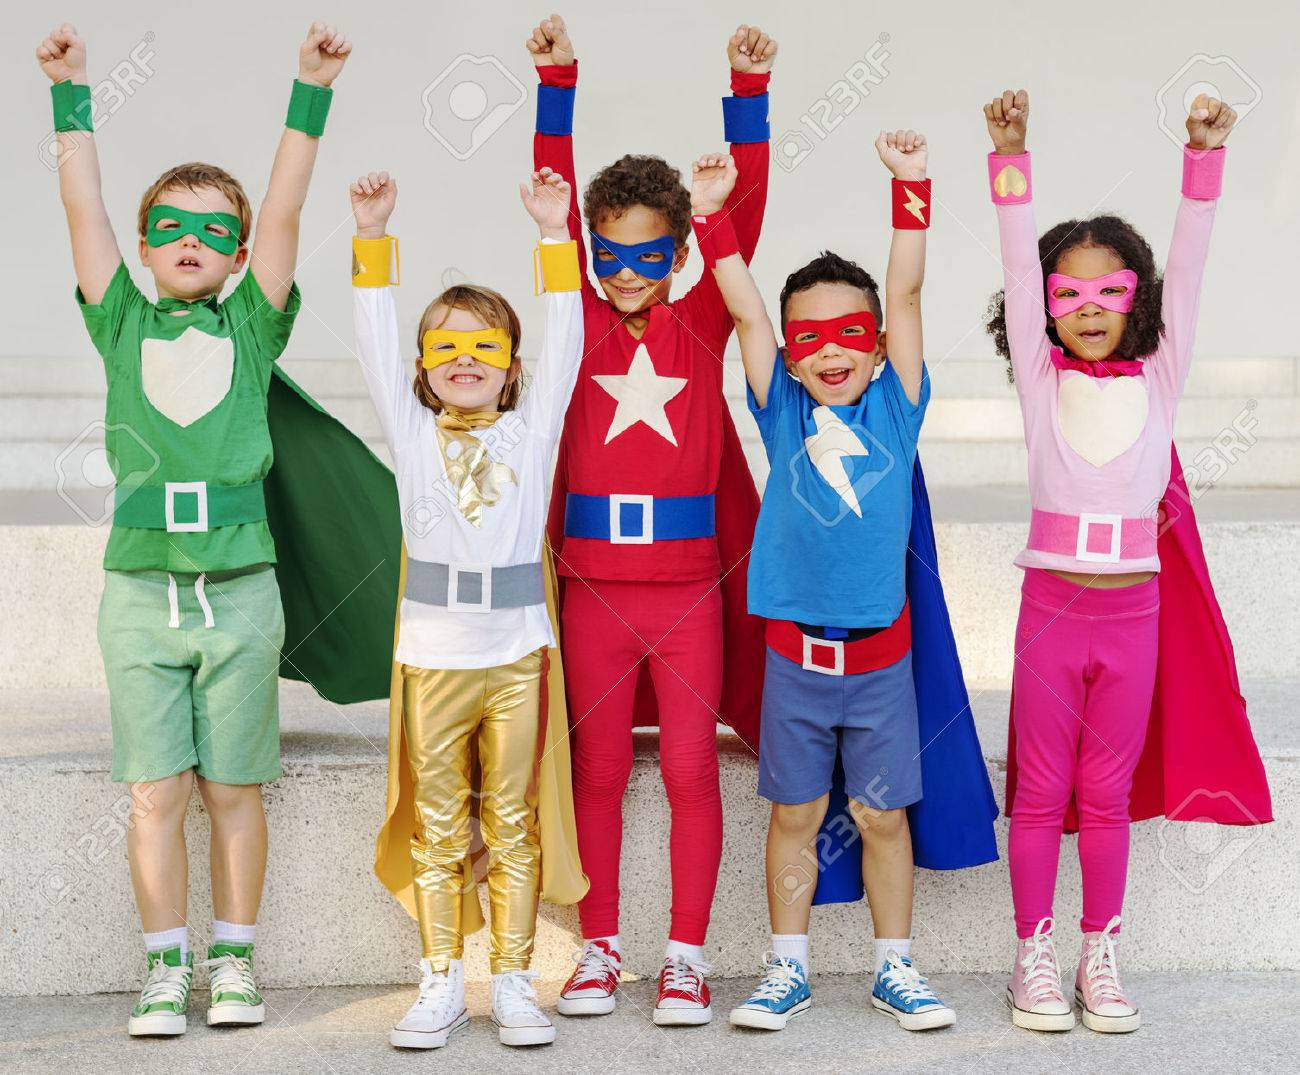 Superheroes Kids Friends Playing Togetherness Fun Concept Banque d'images - 60692484